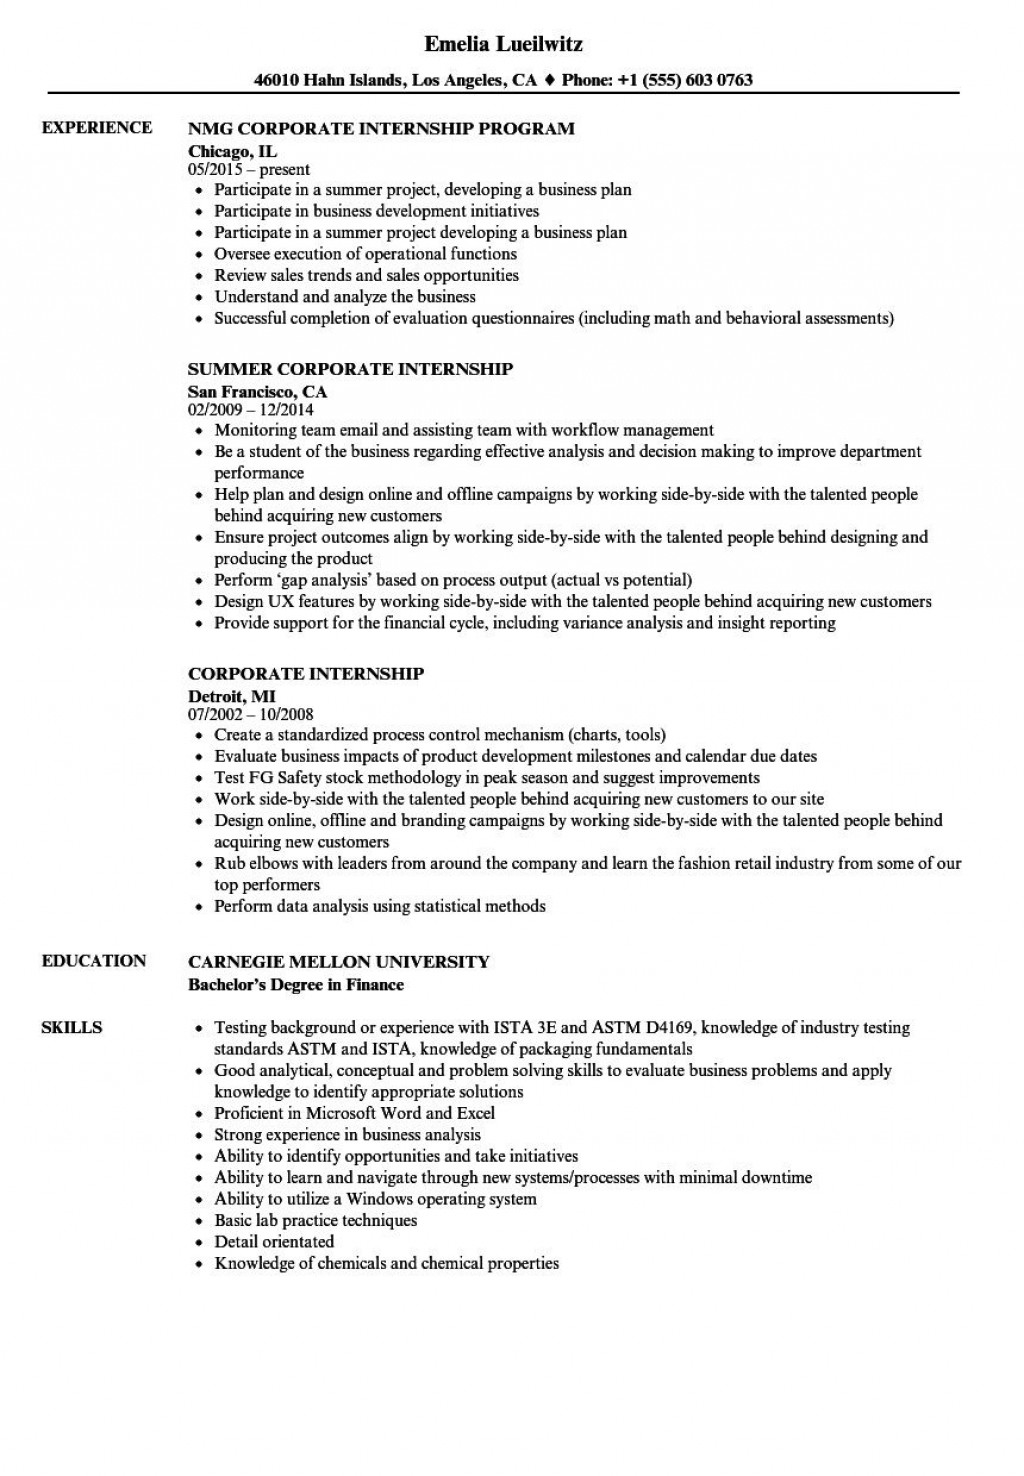 002 Fearsome Resume Template For Intern High Resolution  Interns Internship In Engineering Law ExampleLarge